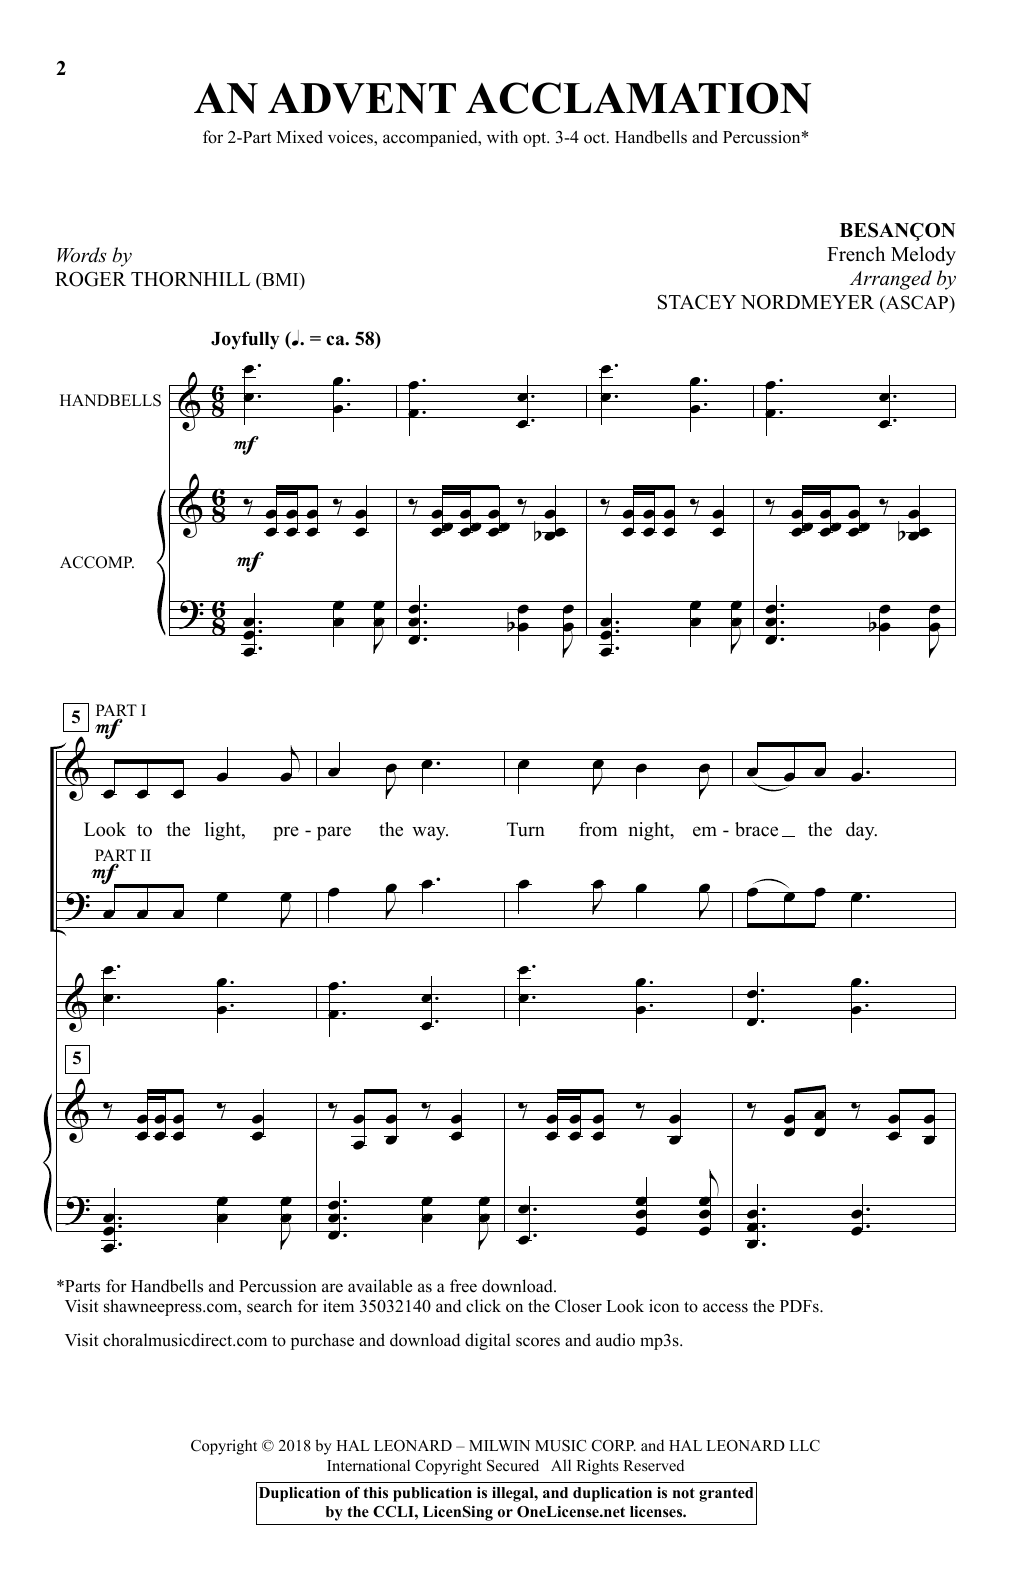 An Advent Acclamation Sheet Music